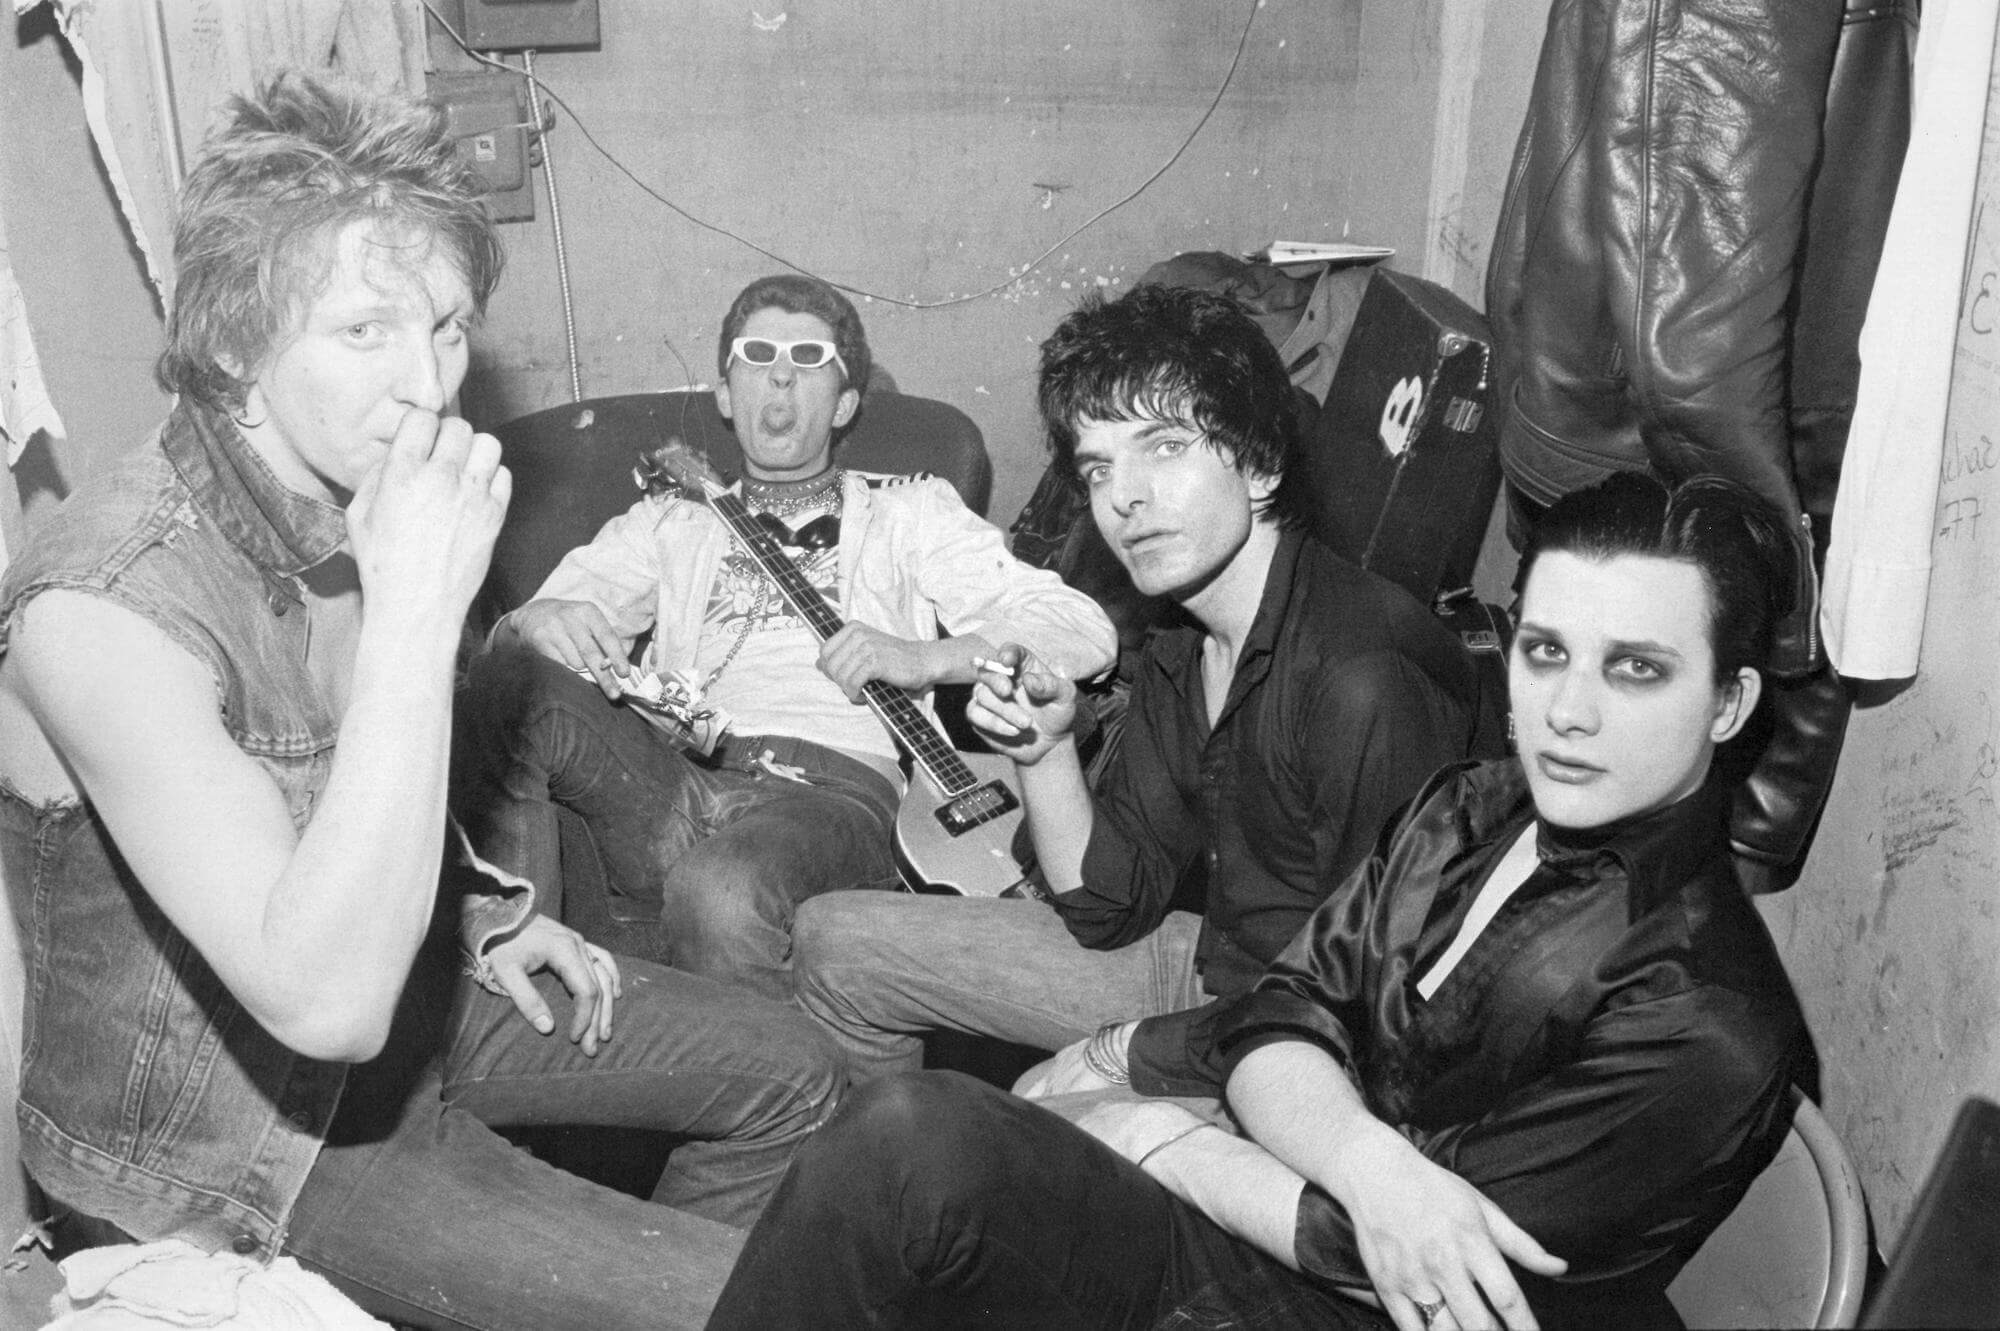 The Damned backstage at CBGB, 1977